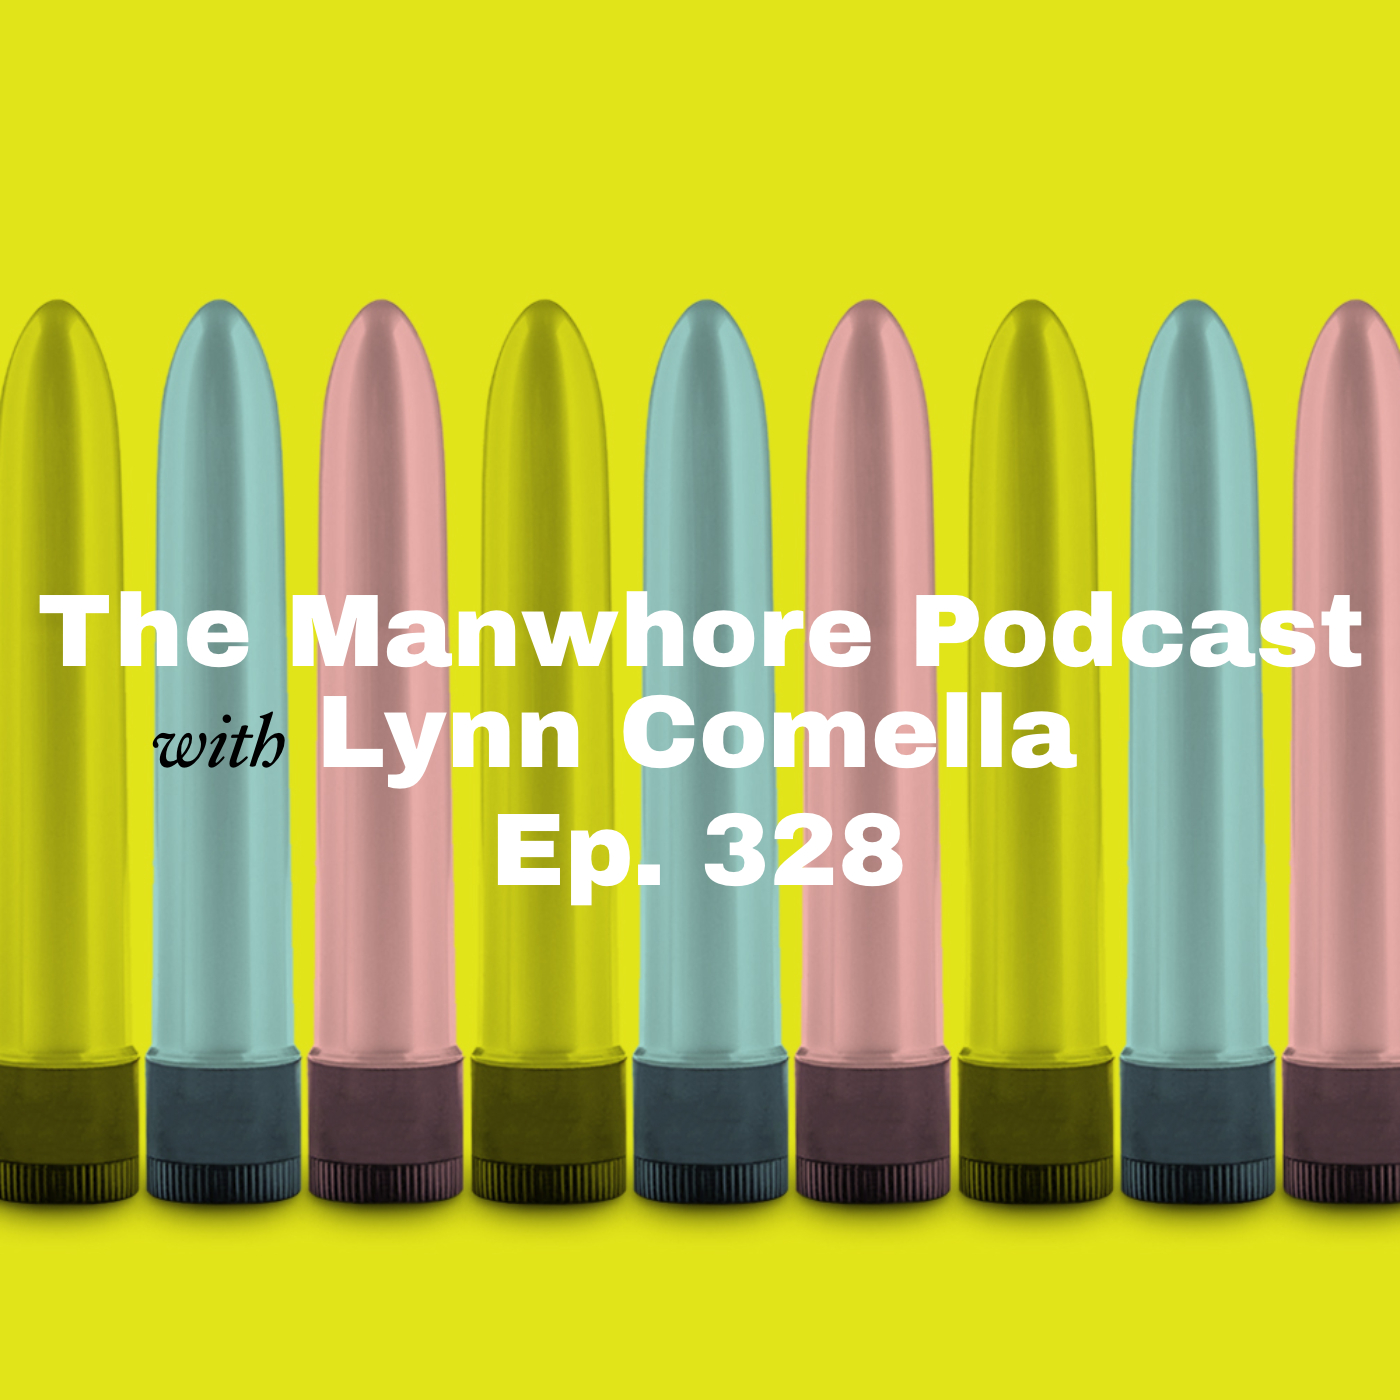 The Manwhore Podcast: A Sex-Positive Quest - Ep. 328: A Nerdy Look at Sex Toy Shops with Lynn Comella